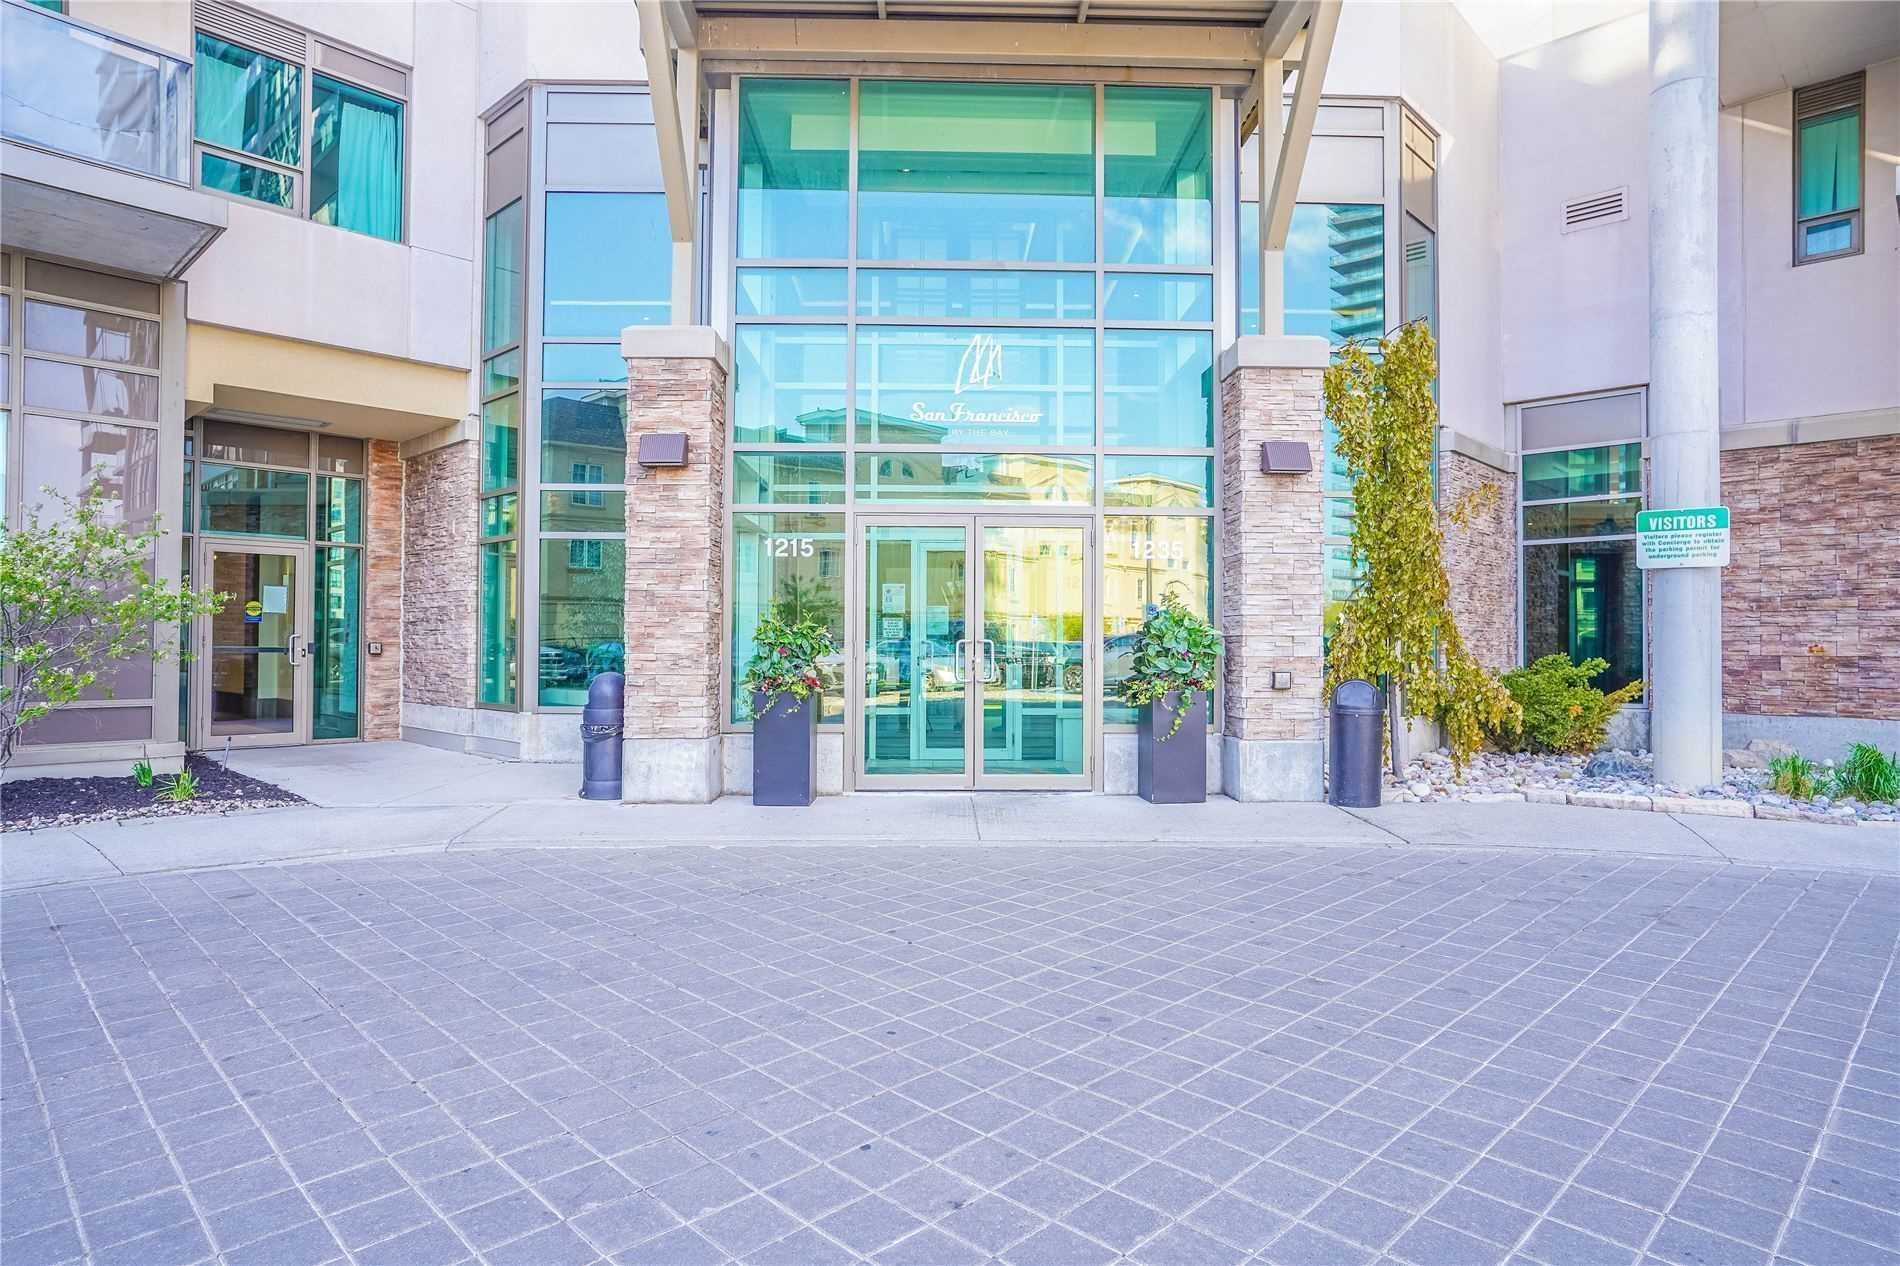 1215 Bayly St, unit 402 for sale in Toronto - image #2